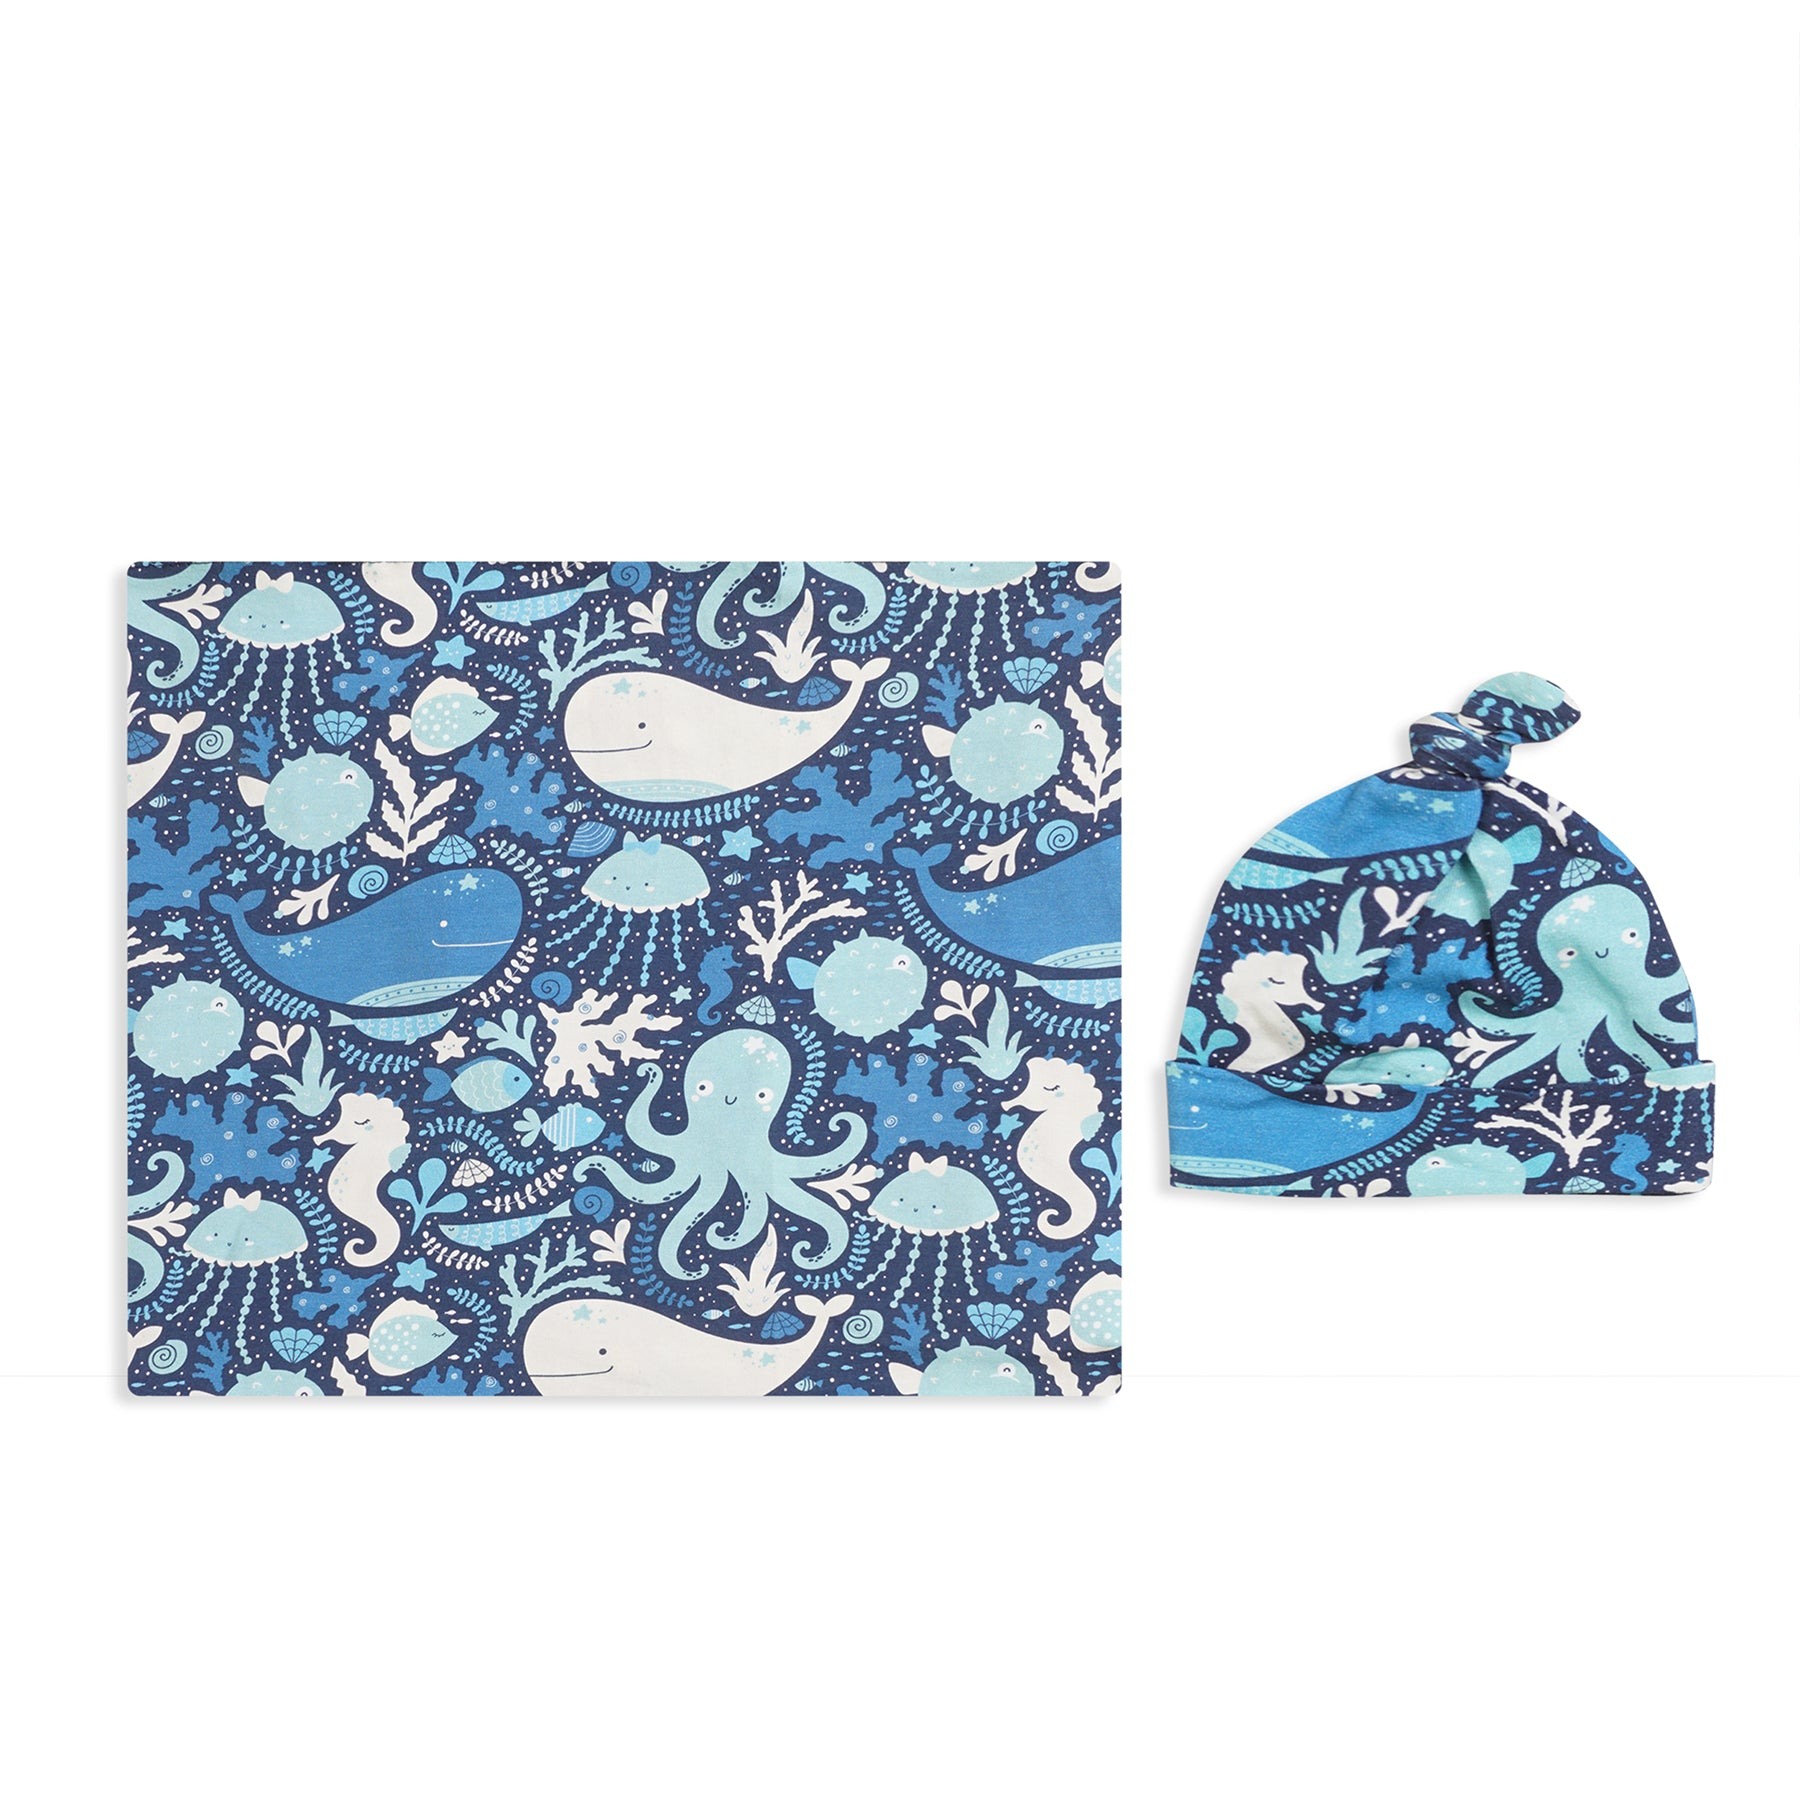 Happy Whale Printed Swaddle Set For Newborn Baby Boy And Girl With Organic Maternity Robe | Comfy Mommy